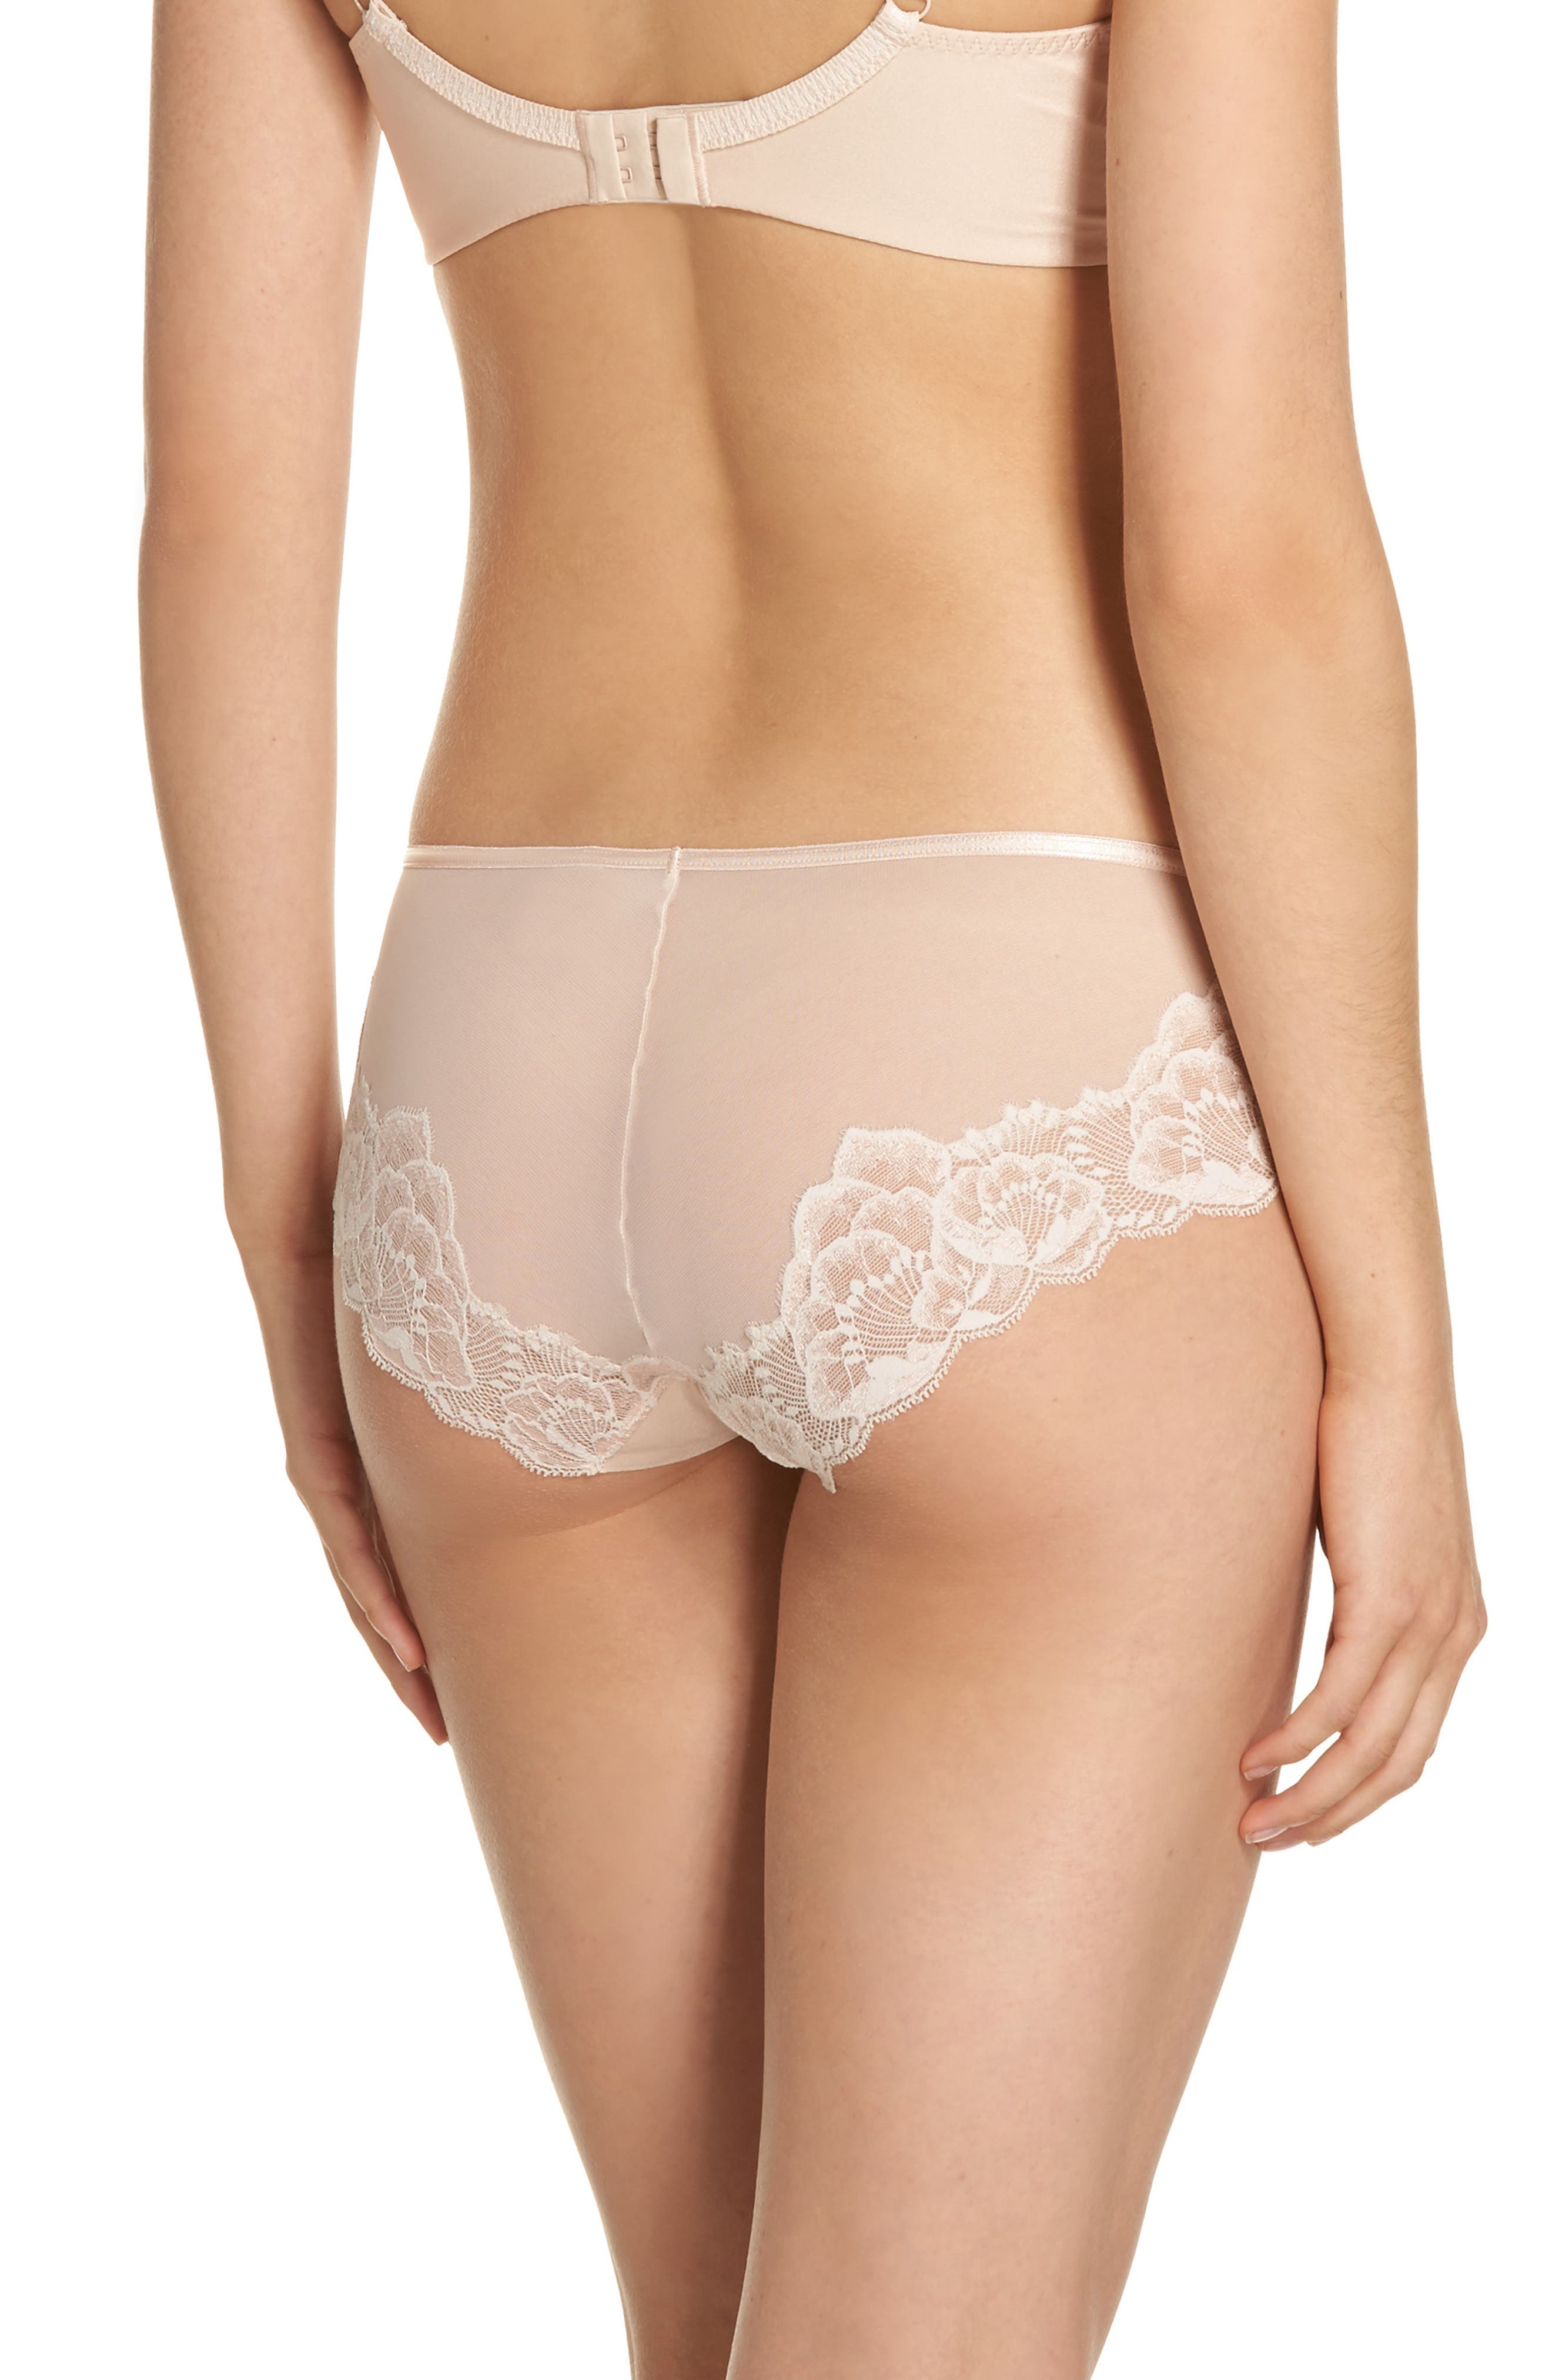 Orangerie Hipster Panties,                             Alternate thumbnail 2, color,                             Skin Rose